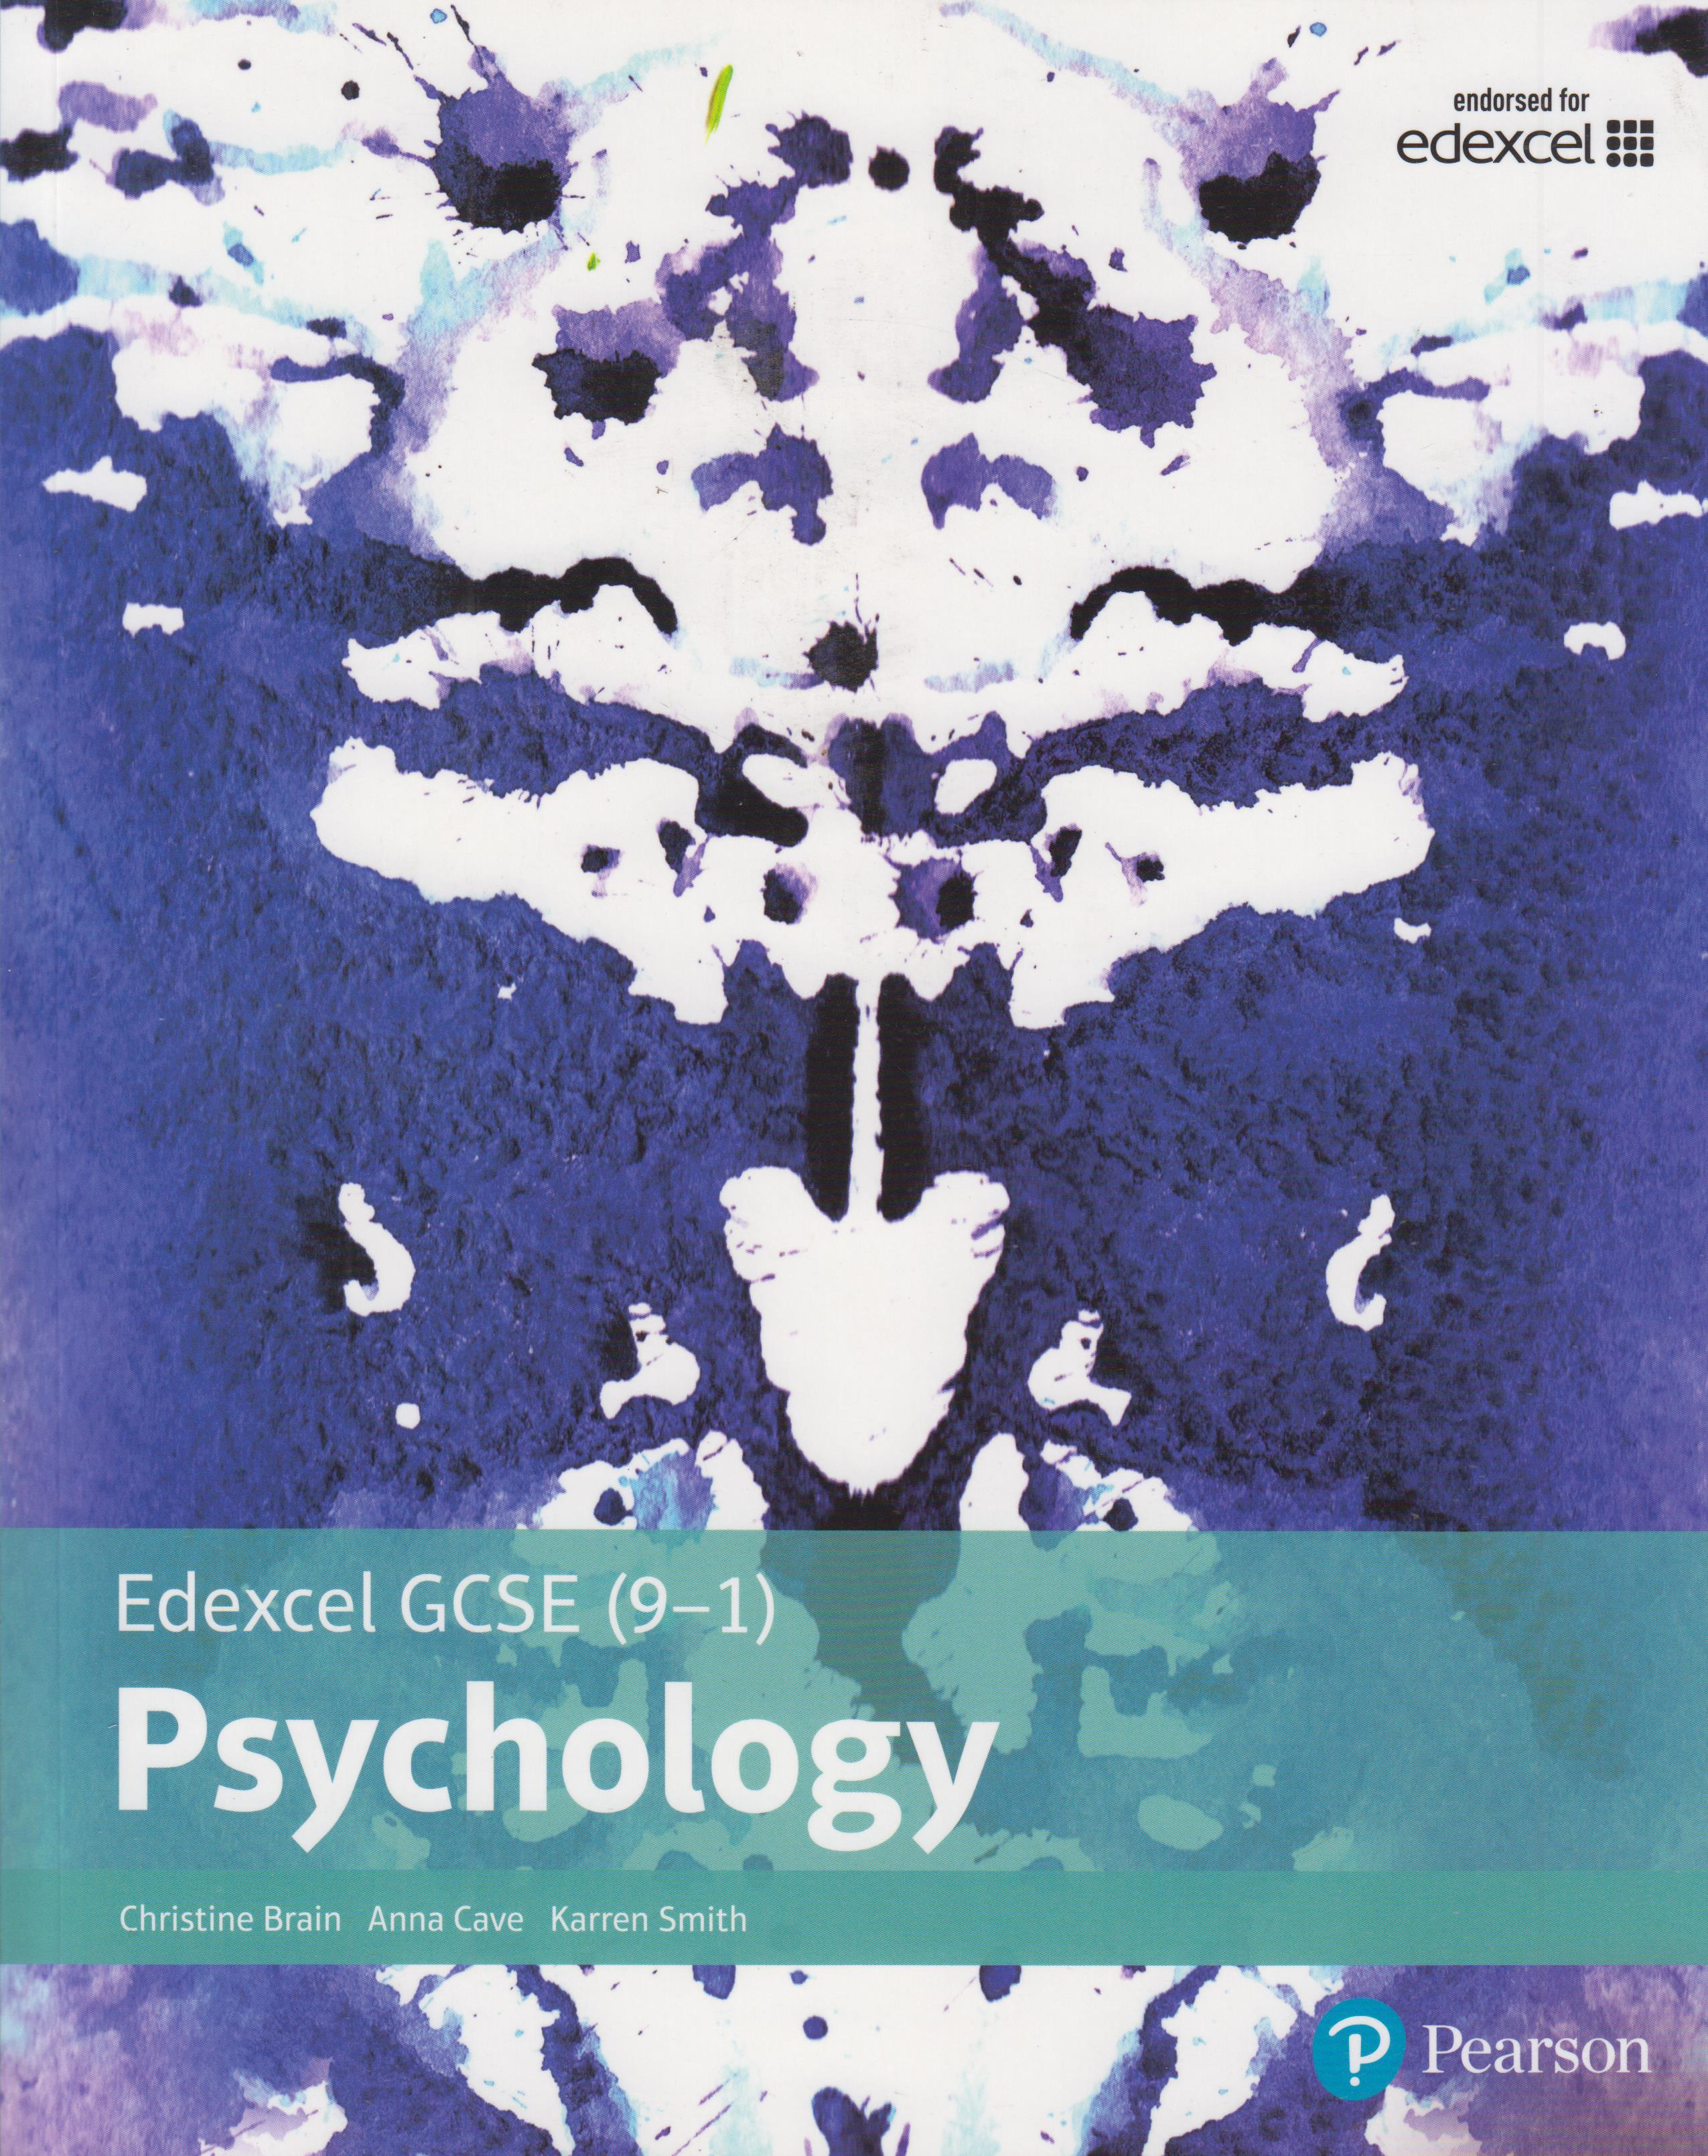 Edexcel GCSE (9-1) Psychology | Books, Stationery, Computers, Laptops and  more  Buy online and get free delivery on orders above Ksh  2,000  Much  more